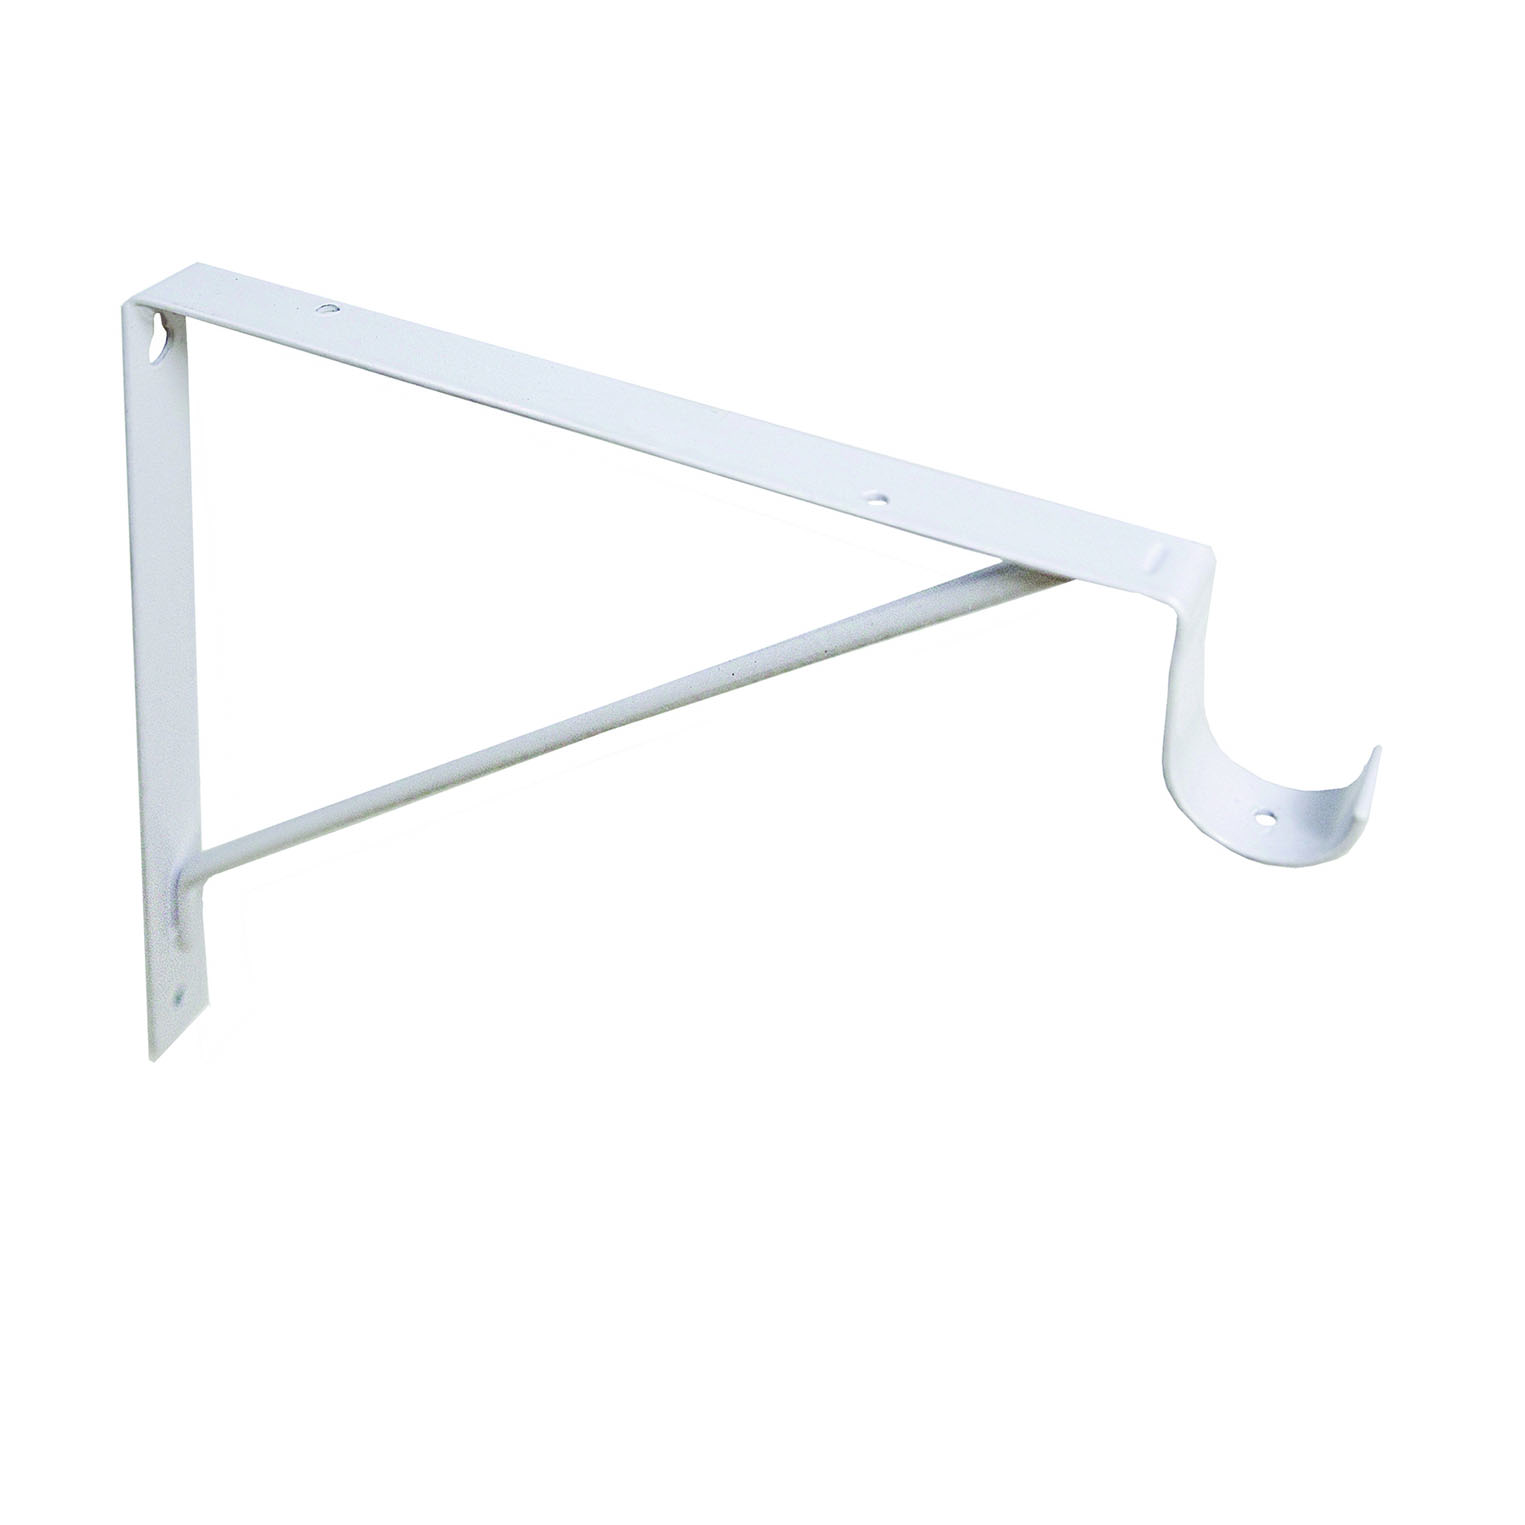 Design House 11 in. Shelf Rod Bracket, White - 205799